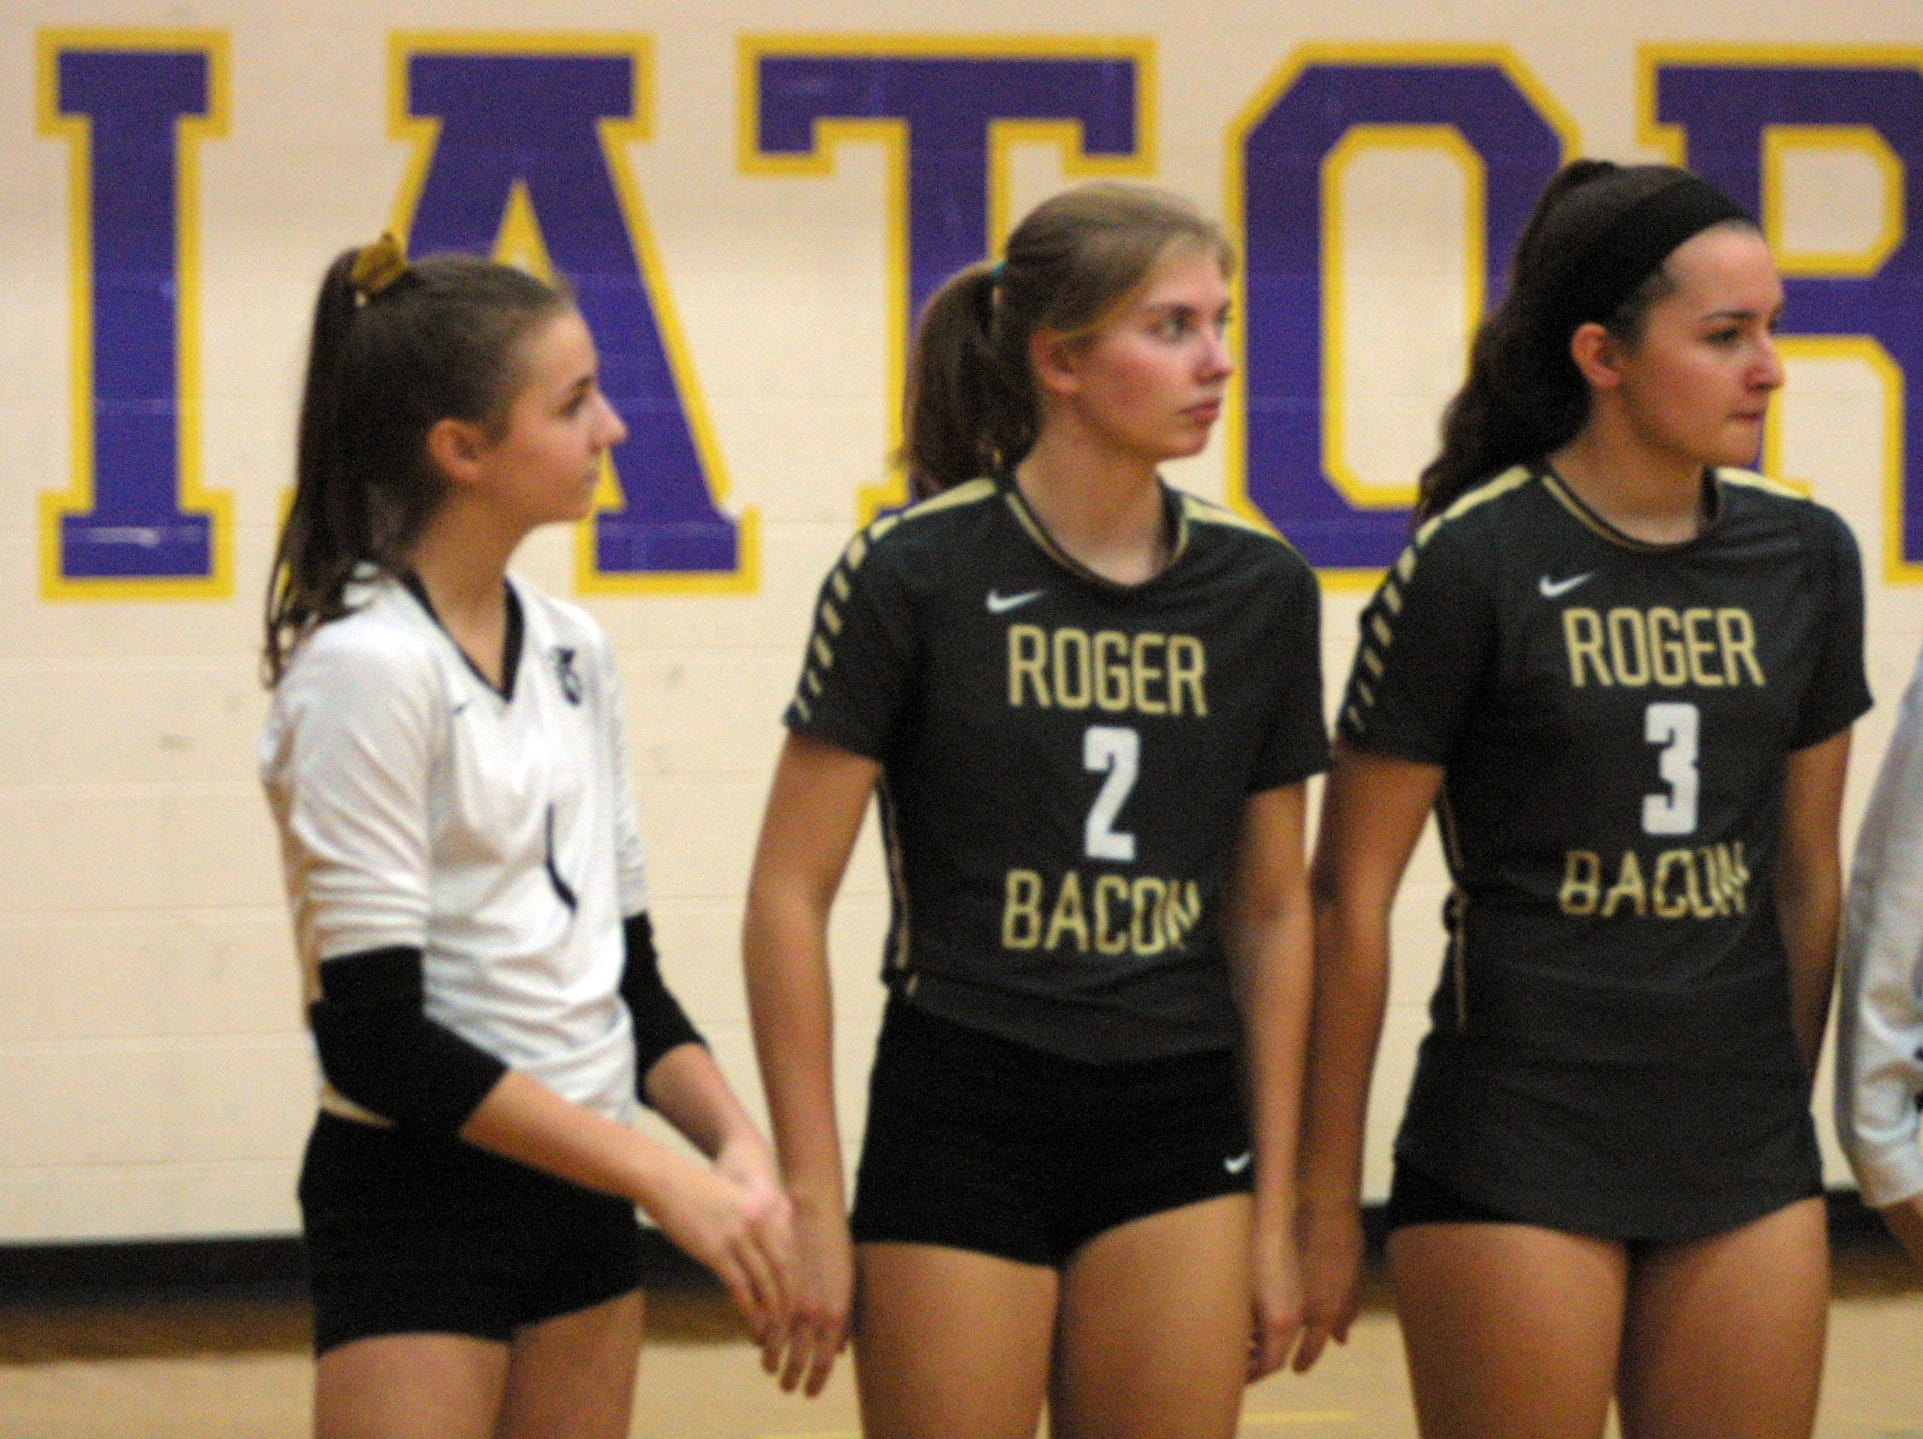 Roger Bacon players Cammy Niesen (1), Mary Kate Dewees (2) and Sarah Dougoud (3) are announced before their team's match against Bishop Fenwick in the regional final at Butler High School, Saturday, Nov. 3, 2018.